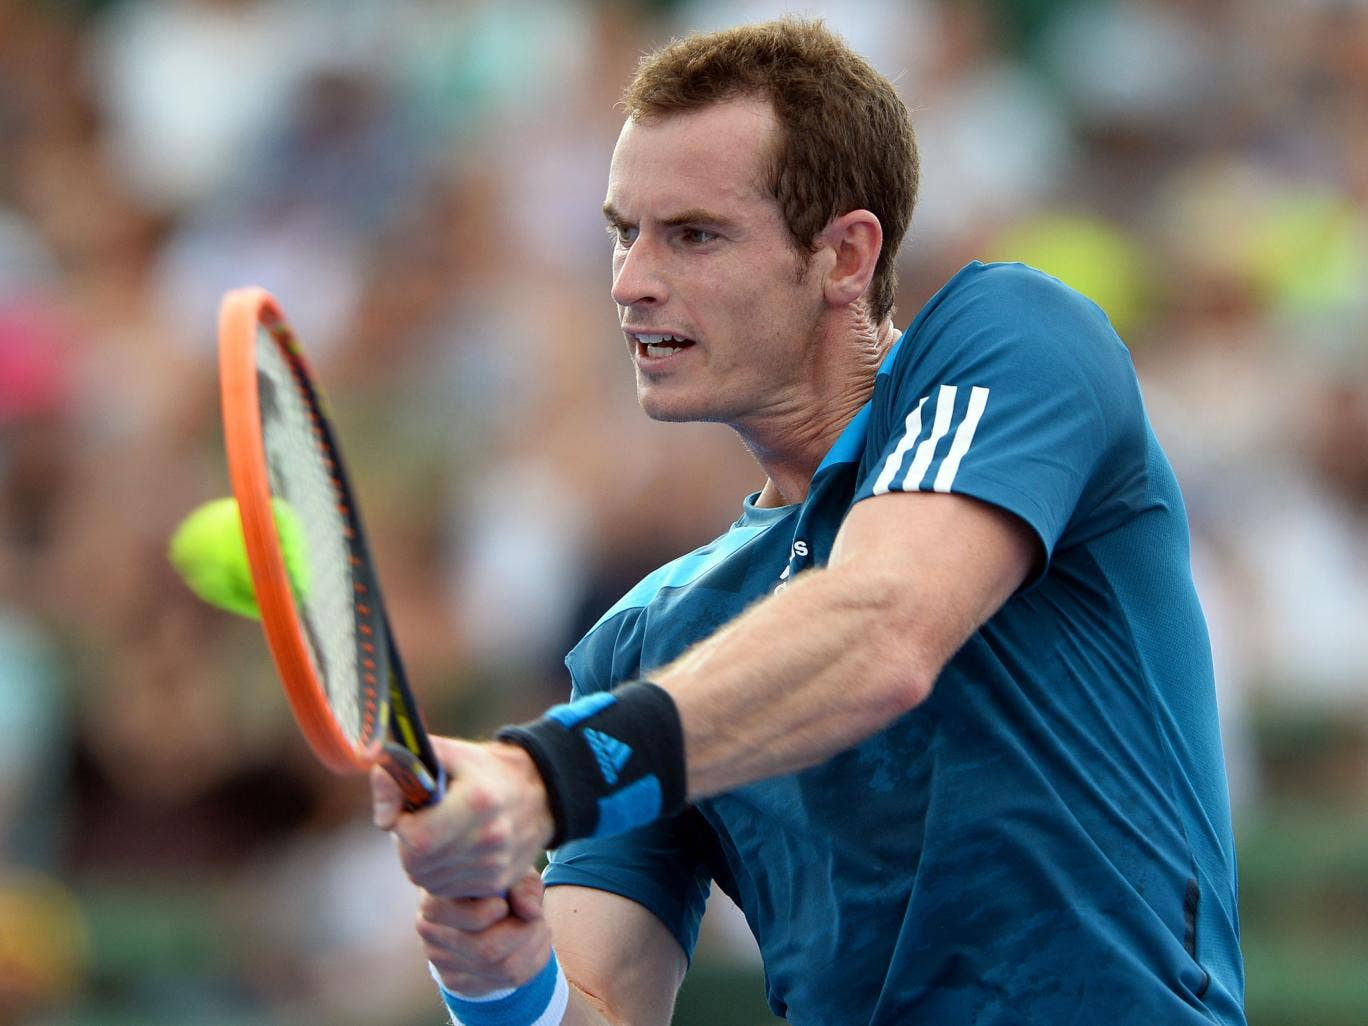 Andy Murray will face Go Saeda of Japan in the first round of the Australian Open.